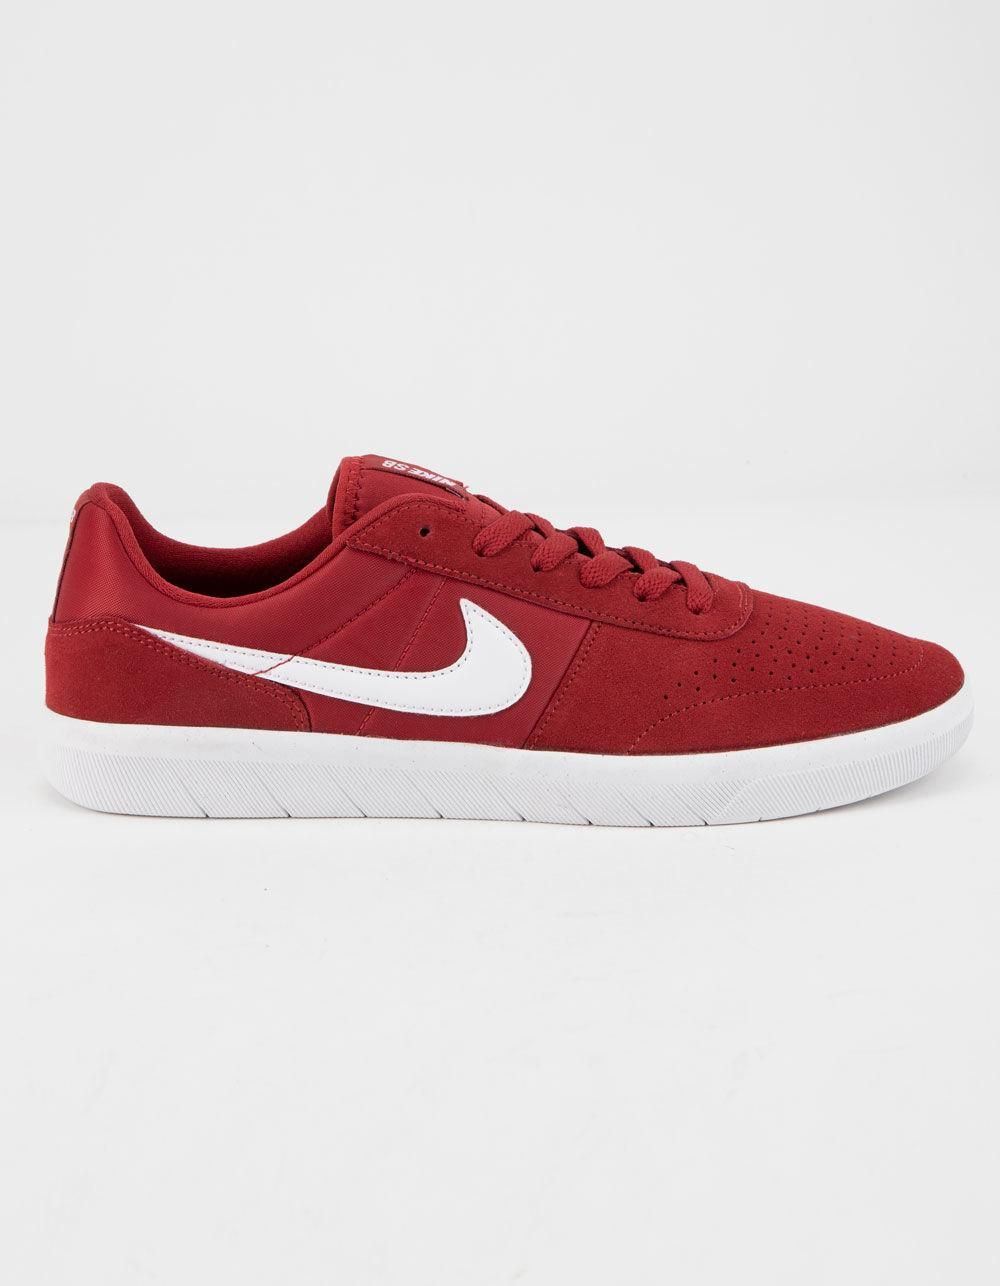 promo code ab7a3 4b3eb Nike - Red Sb Team Classic Crimson   White Mens Shoes for Men - Lyst. View  fullscreen